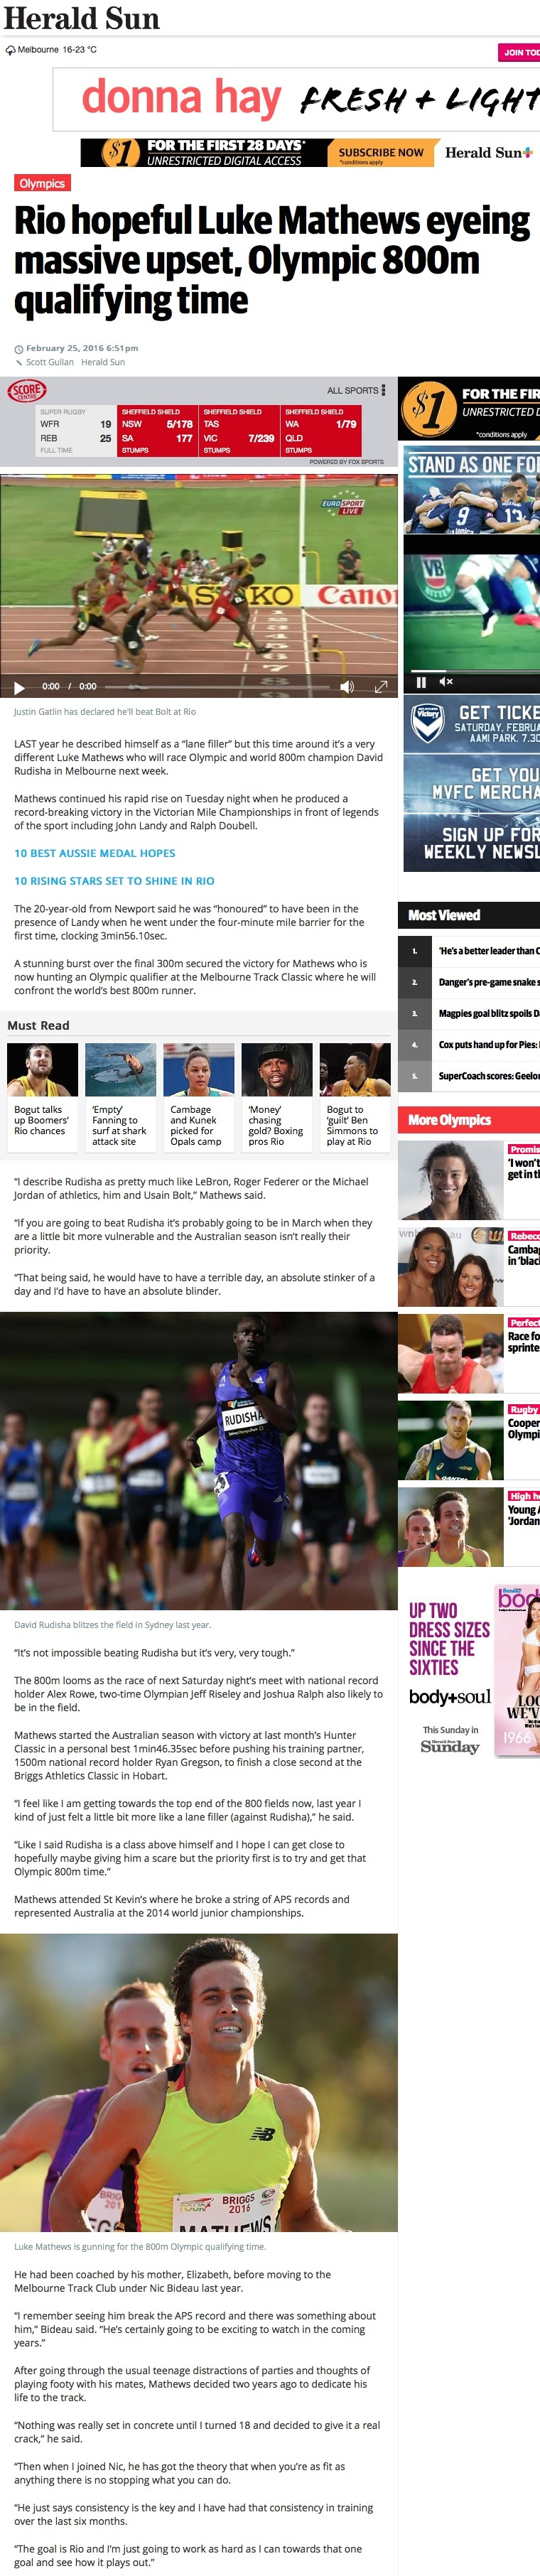 LAST year he described himself as a lane filler but this time around its a very different Luke Mathews who will race Olympic and world 800m champion David Rudisha in Melbourne next week.